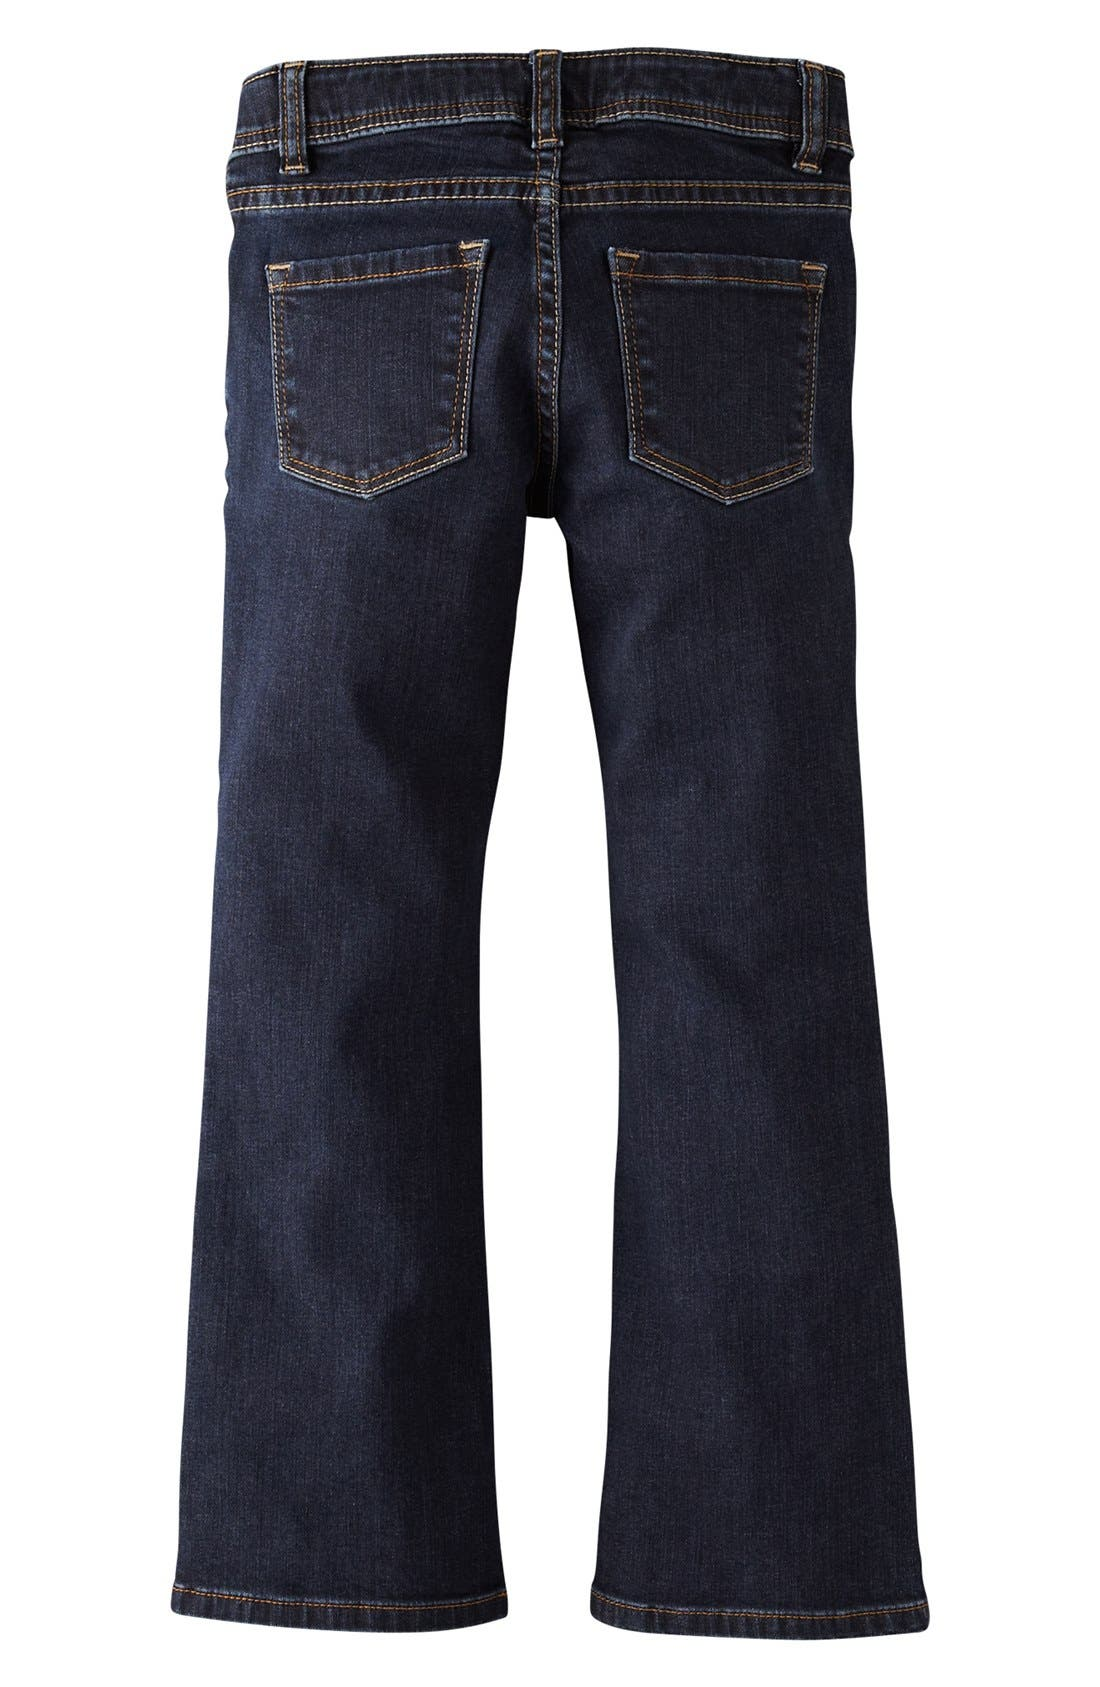 Alternate Image 1 Selected - Mini Boden Bootcut Jeans (Little Girls & Big Girls)